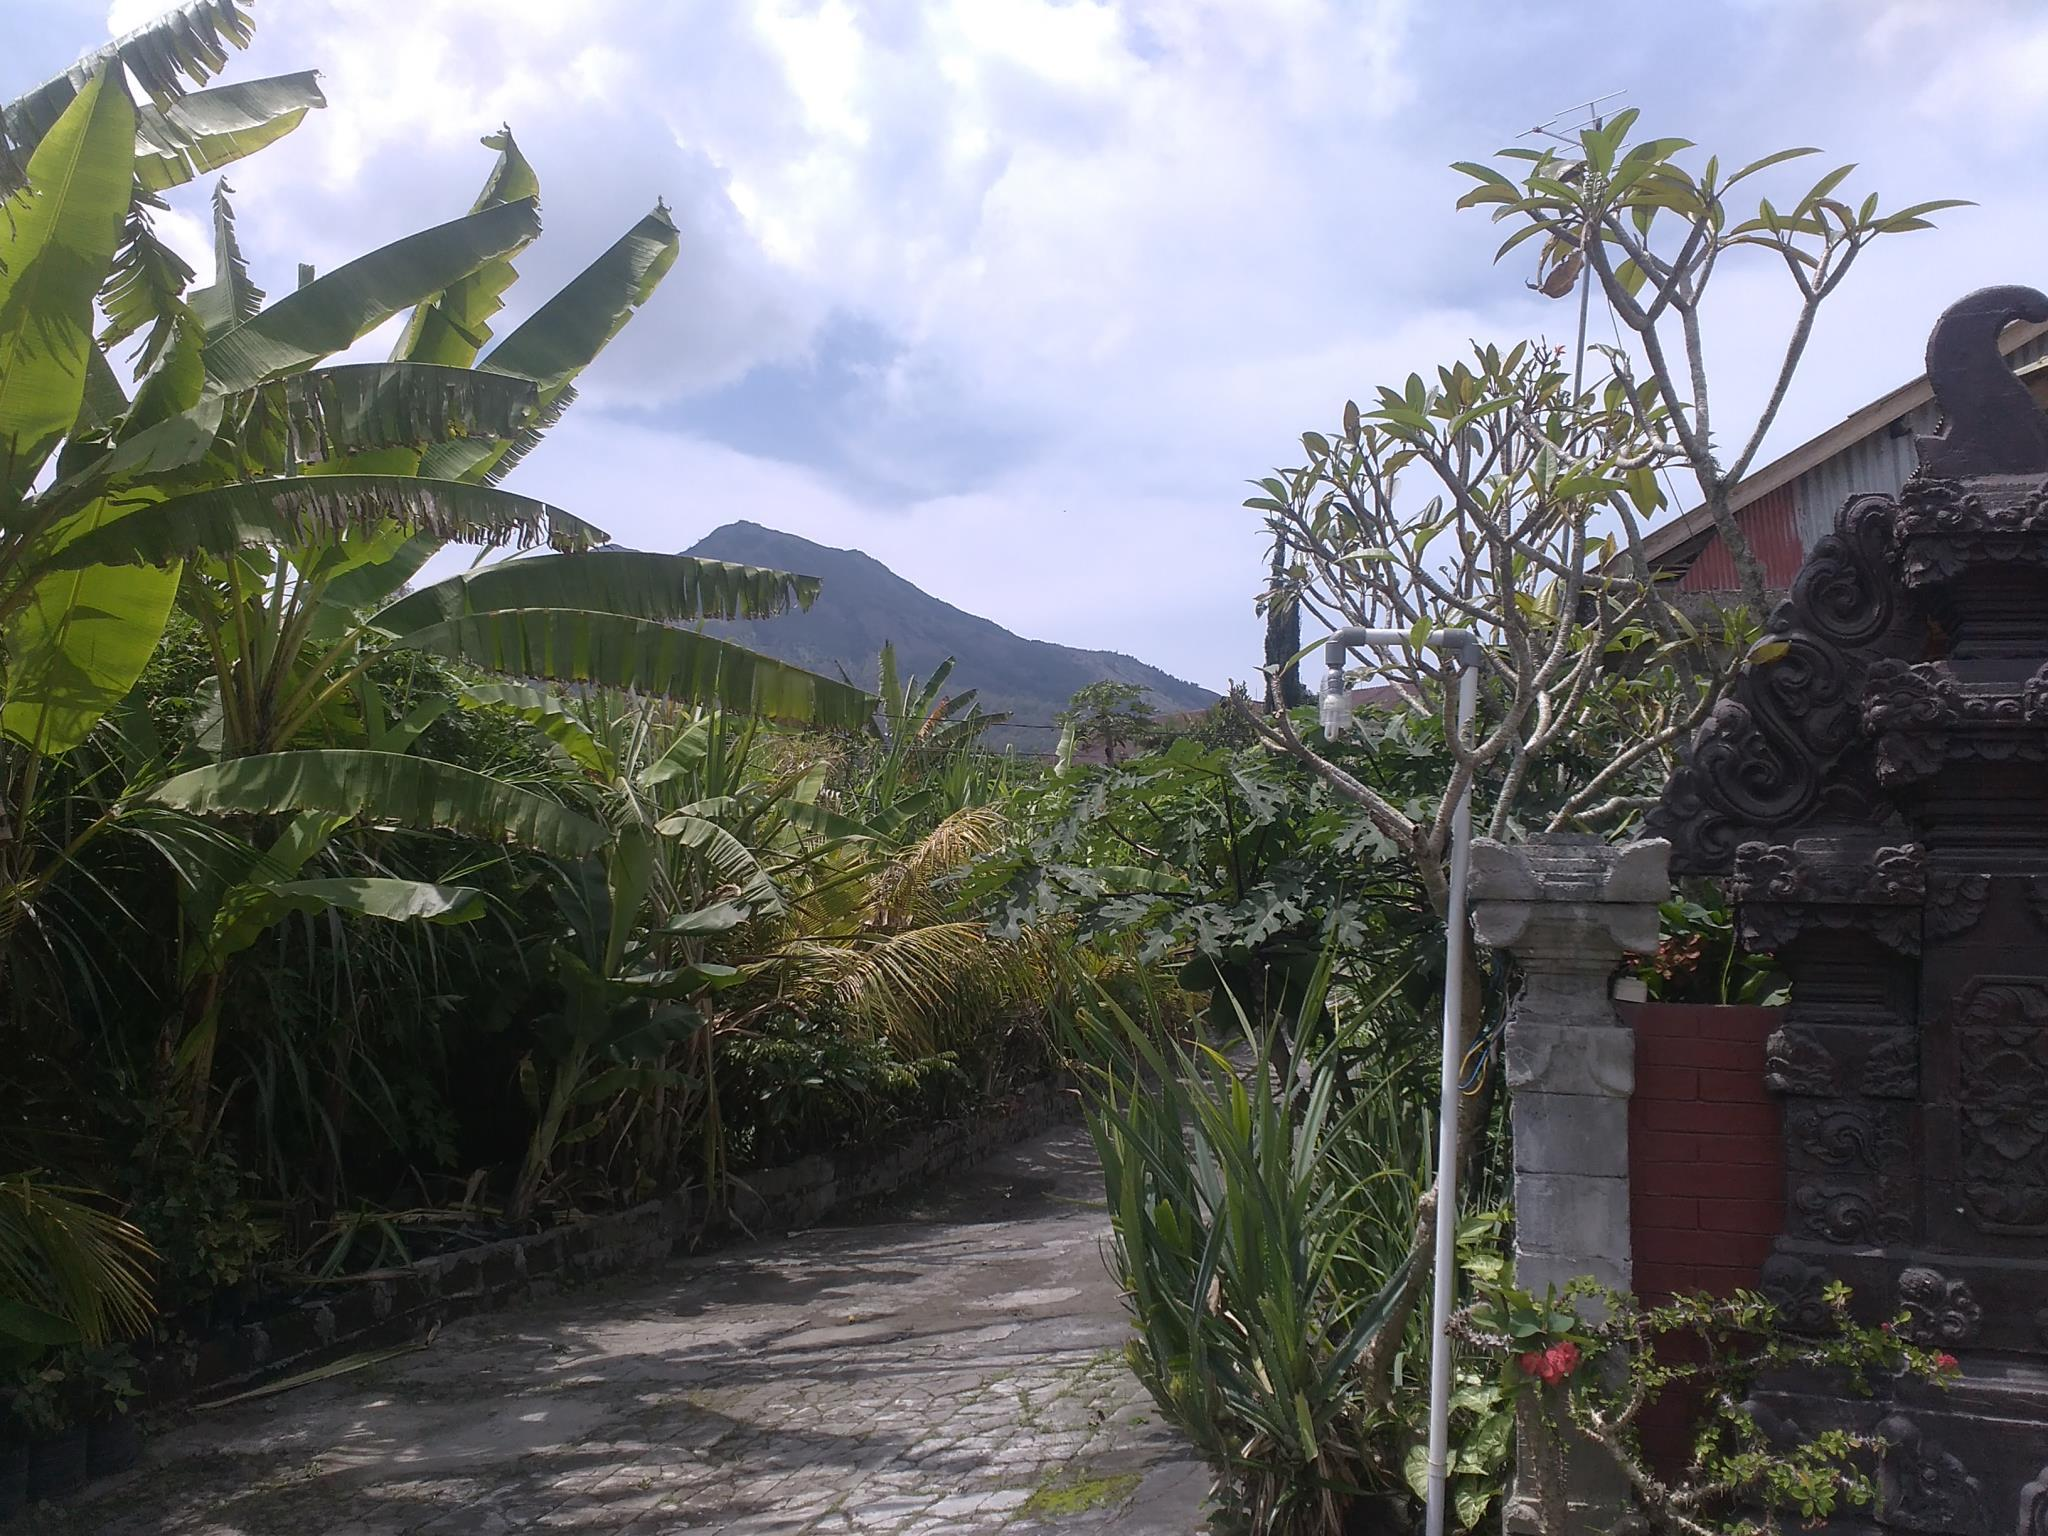 Volcano 2 guesthouse